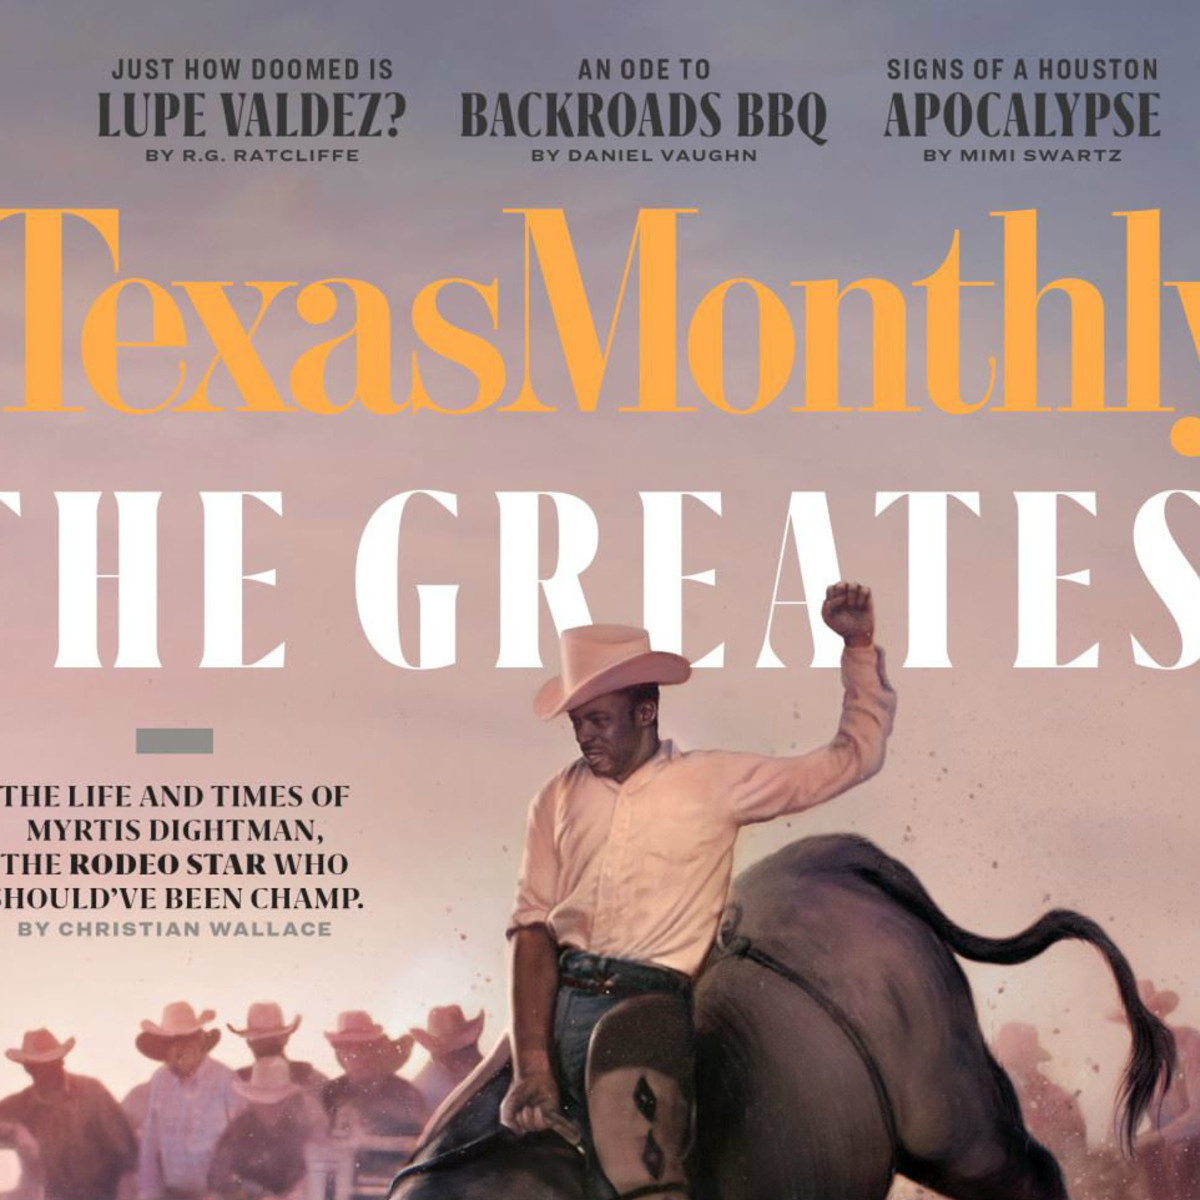 Texas Monthly cover by Leann Mueller